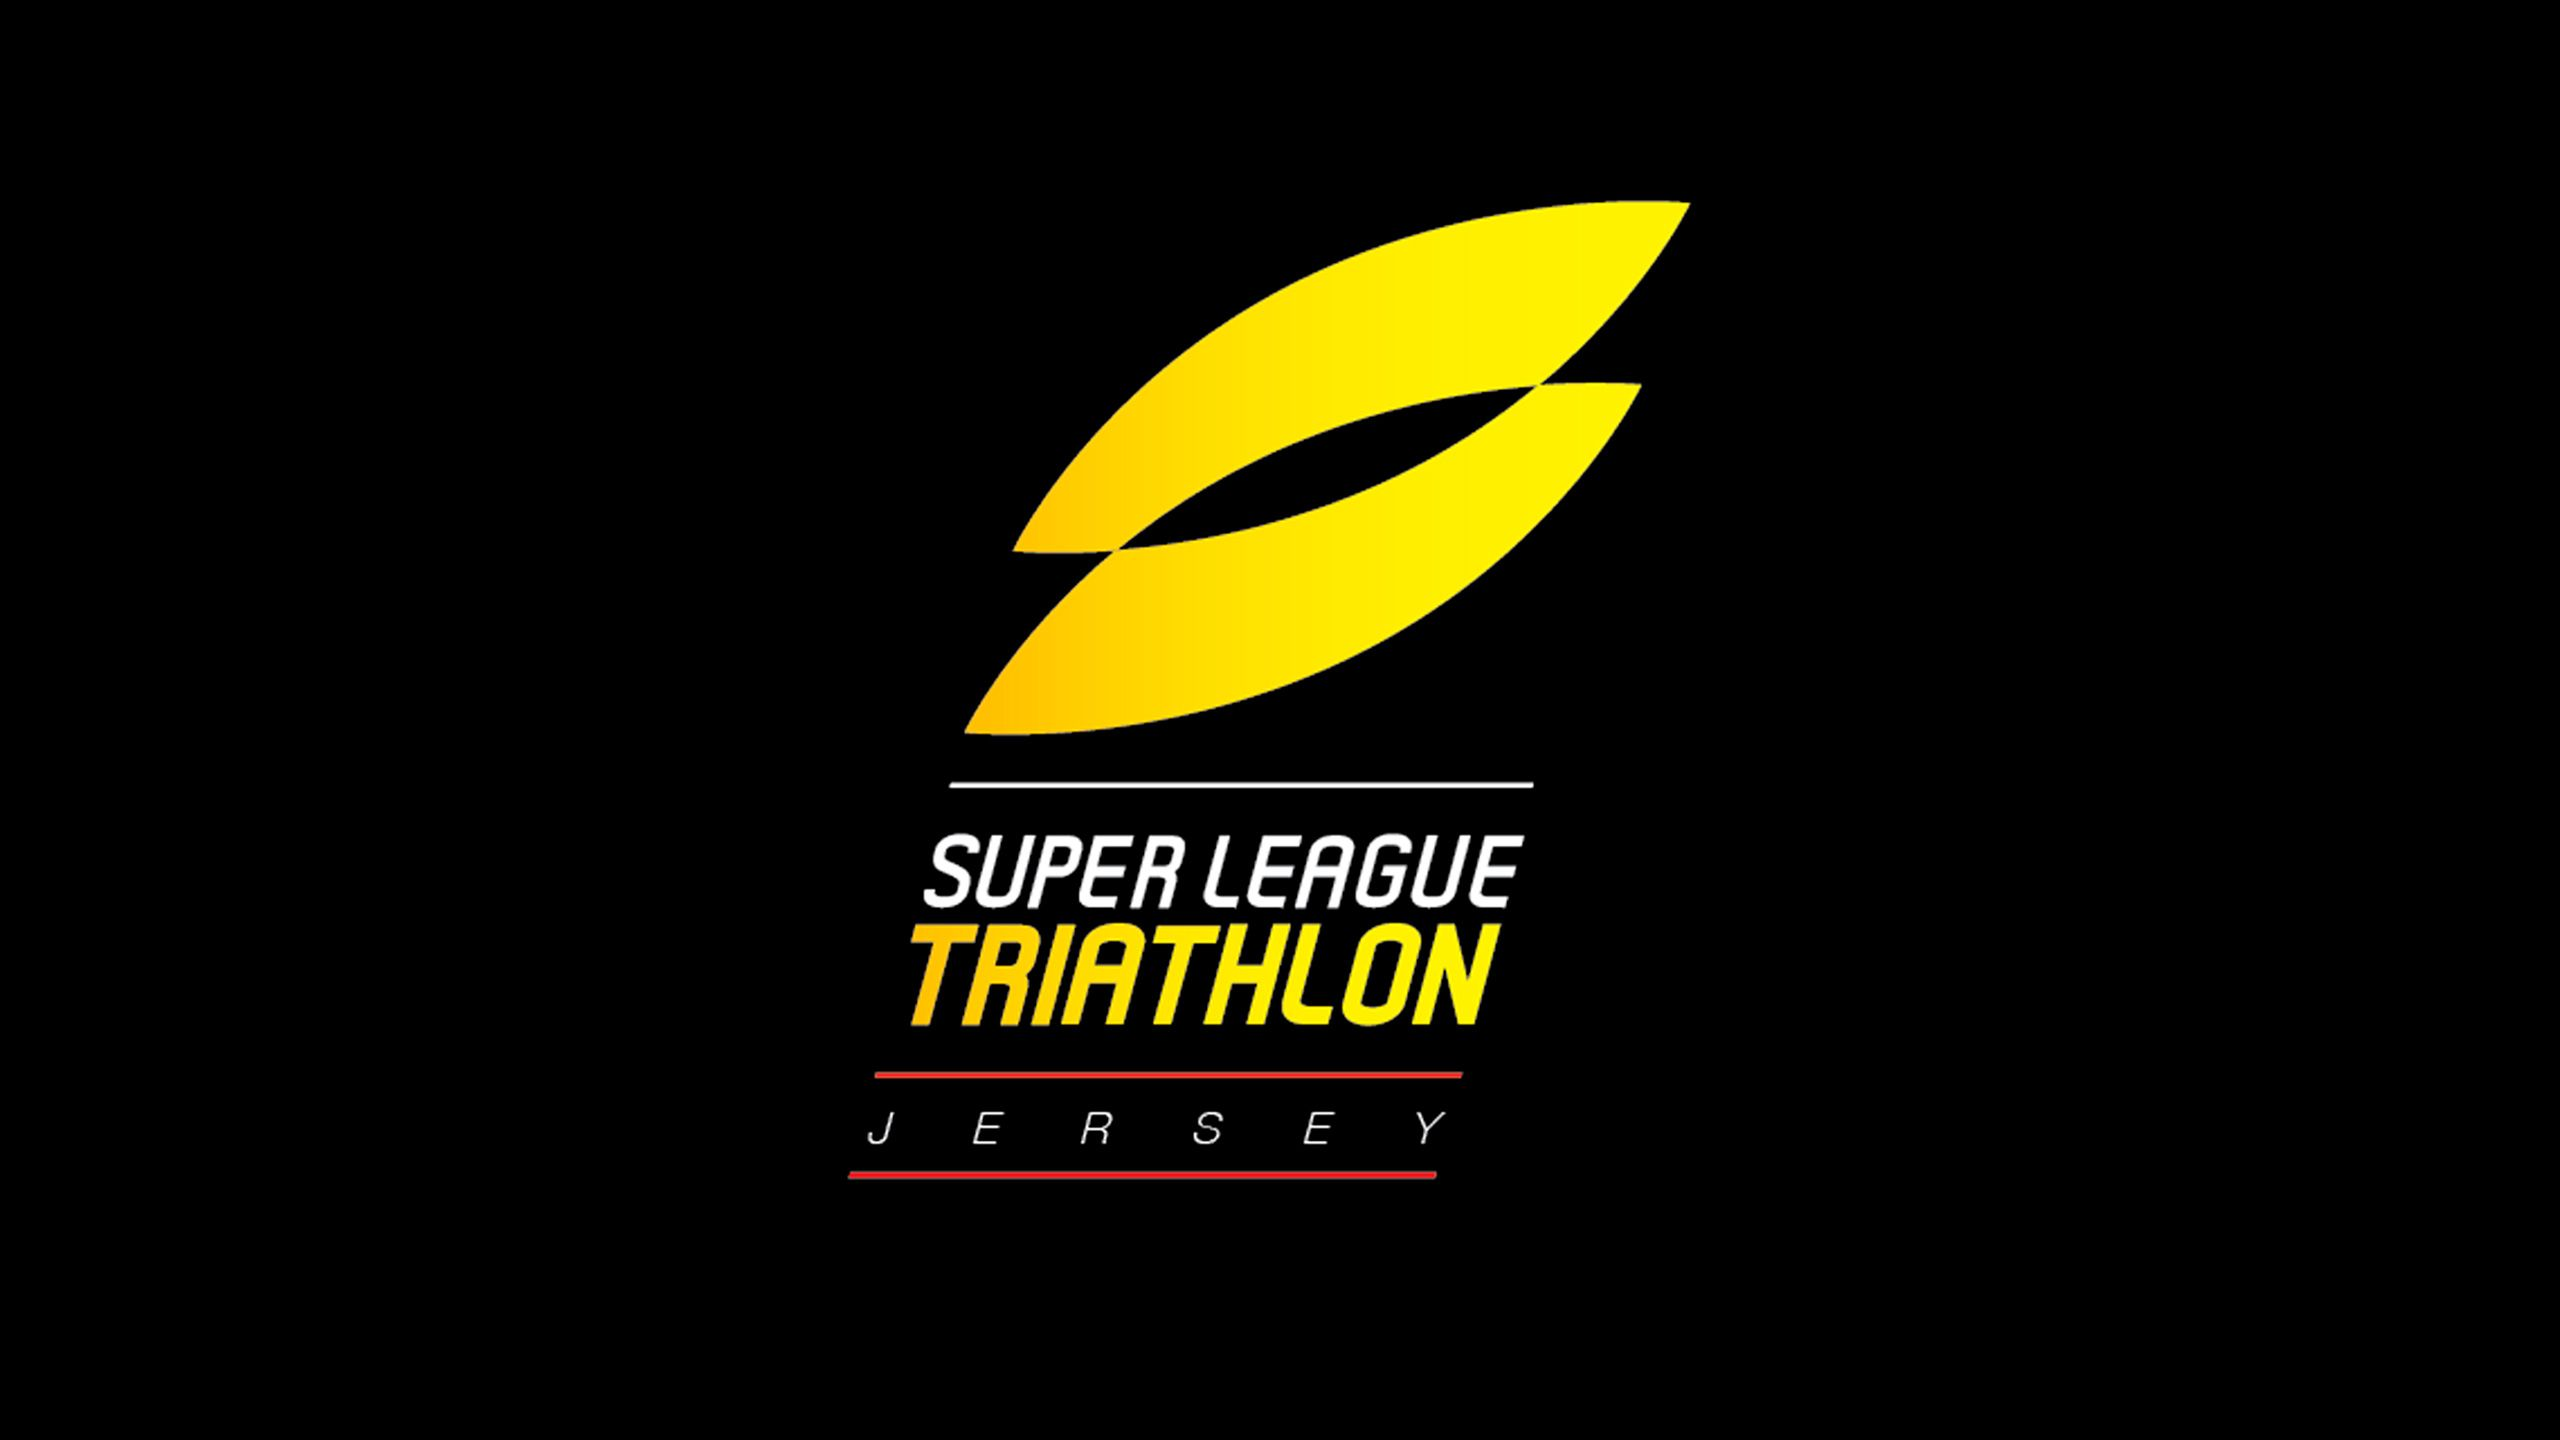 Super League Triathlon: Jersey (Men's Eliminator)